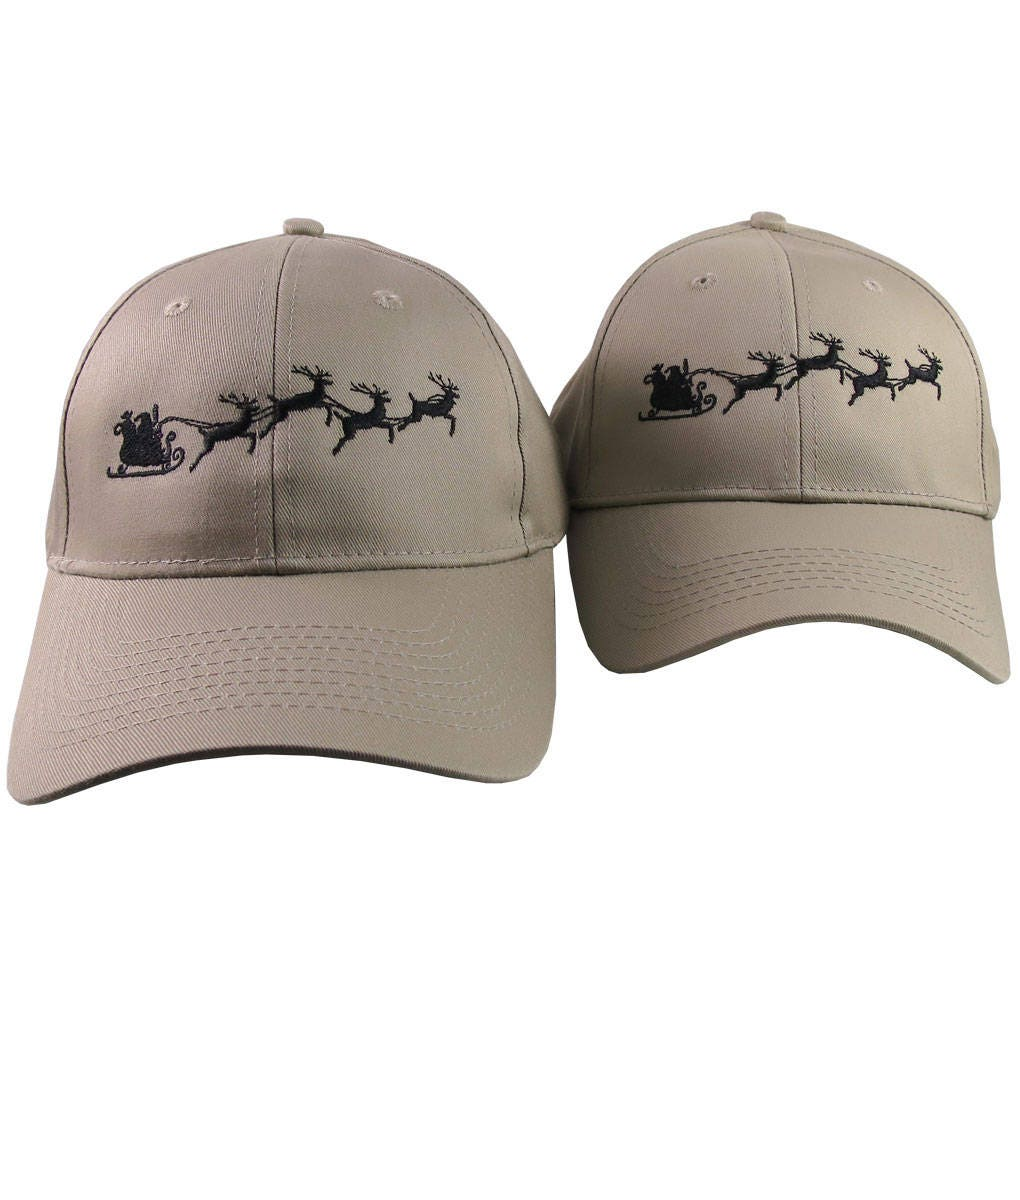 A Pair of Holidays Christmas Santa Sleigh Embroidery Designs on 2 Beige  Adjustable Structured Baseball Caps for Adult + for Child Age 6-14 76443ea9711f